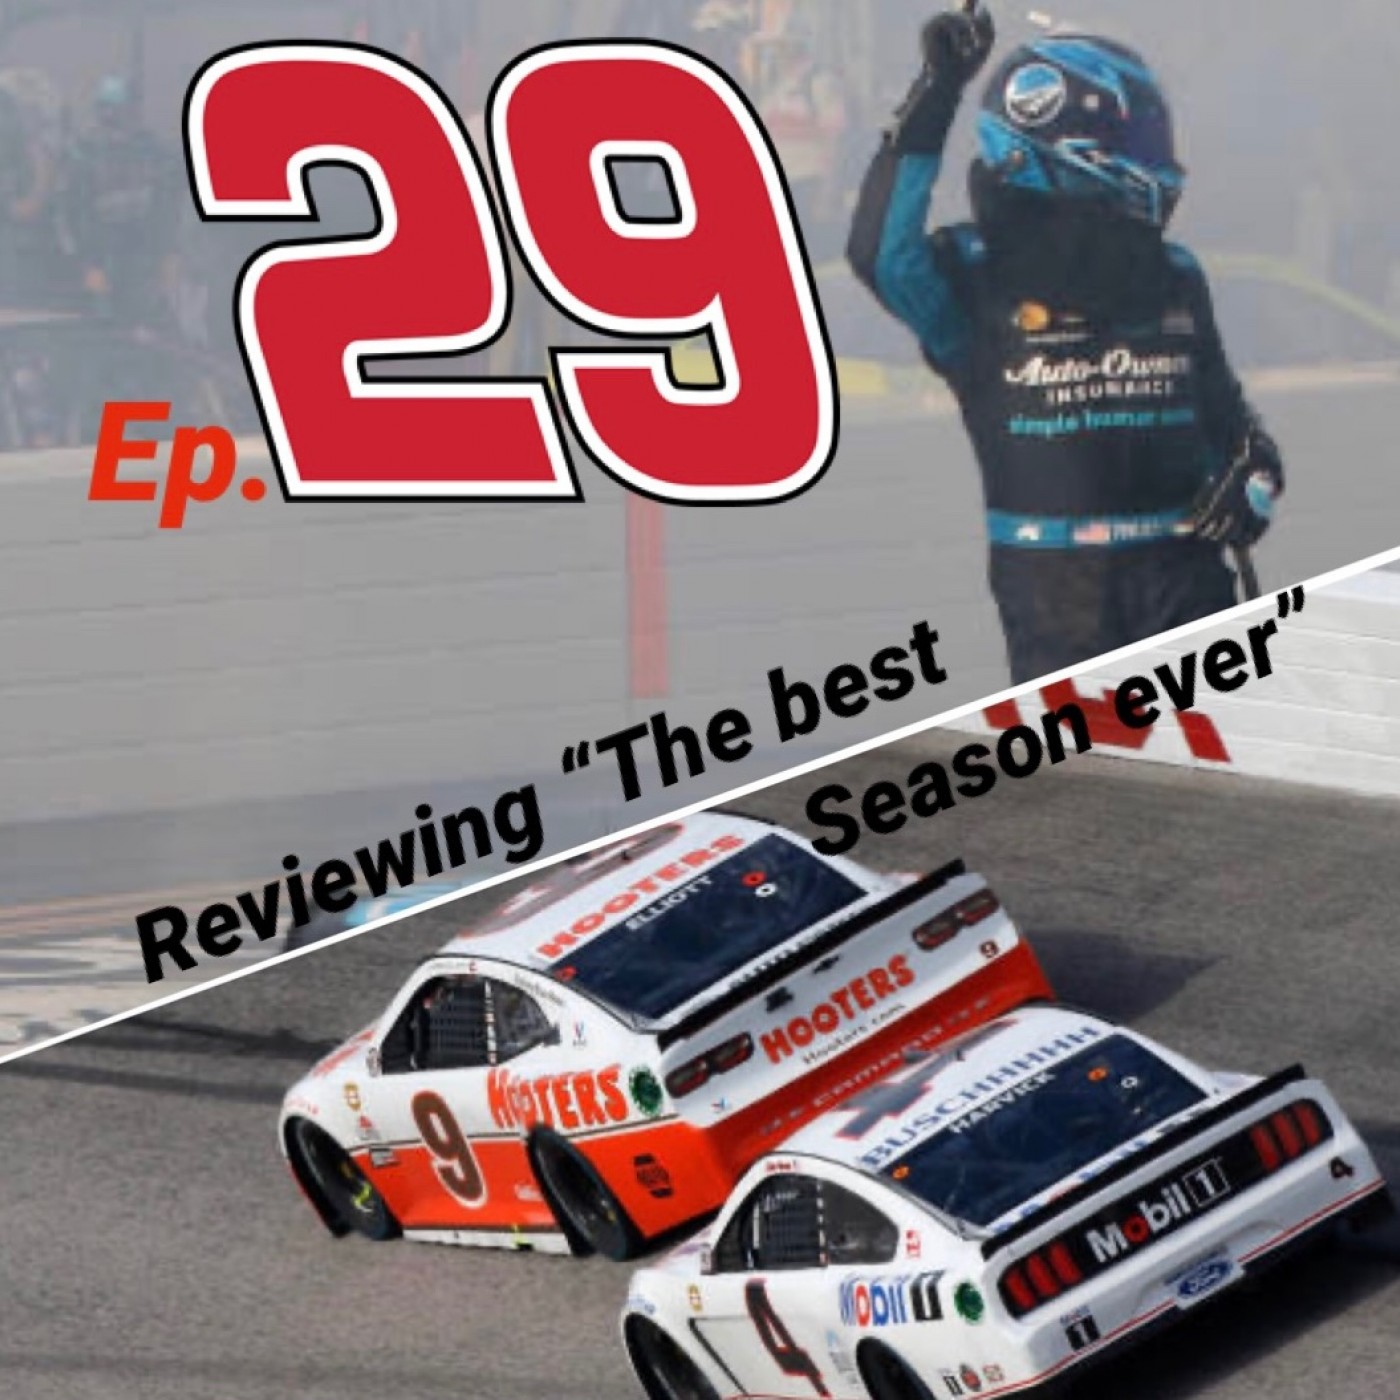 Episode 29 Reviewing the Best Season Ever